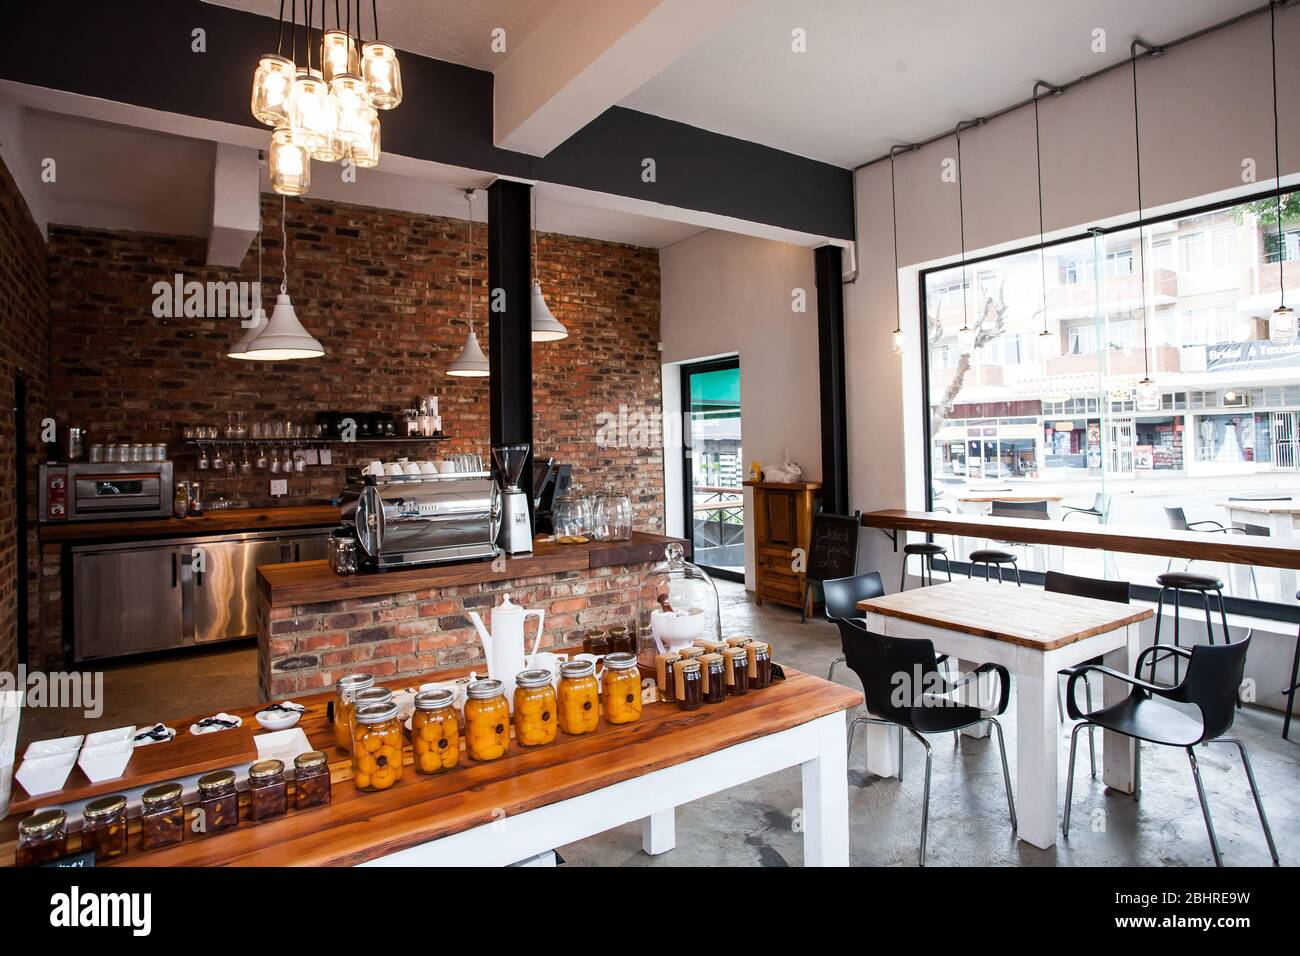 Home Made Cafeteria High Resolution Stock Photography And Images Alamy